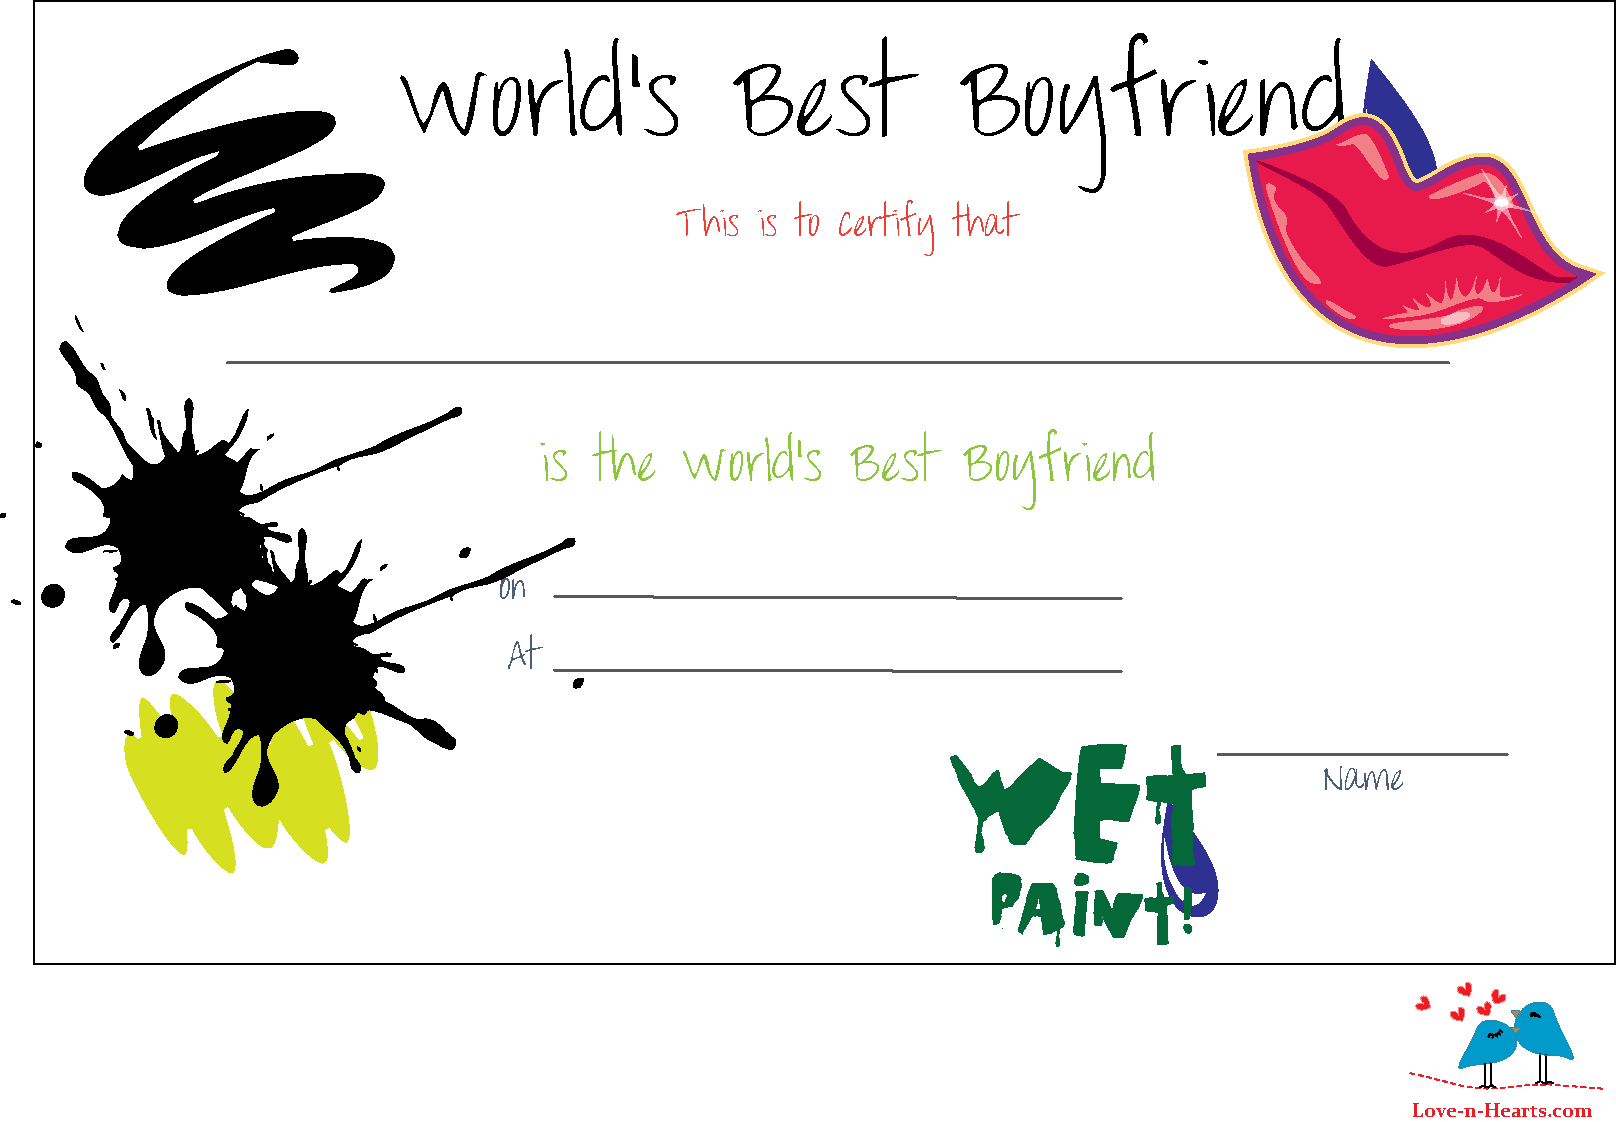 Free Printable Worlds Best Boyfriend Certificates.